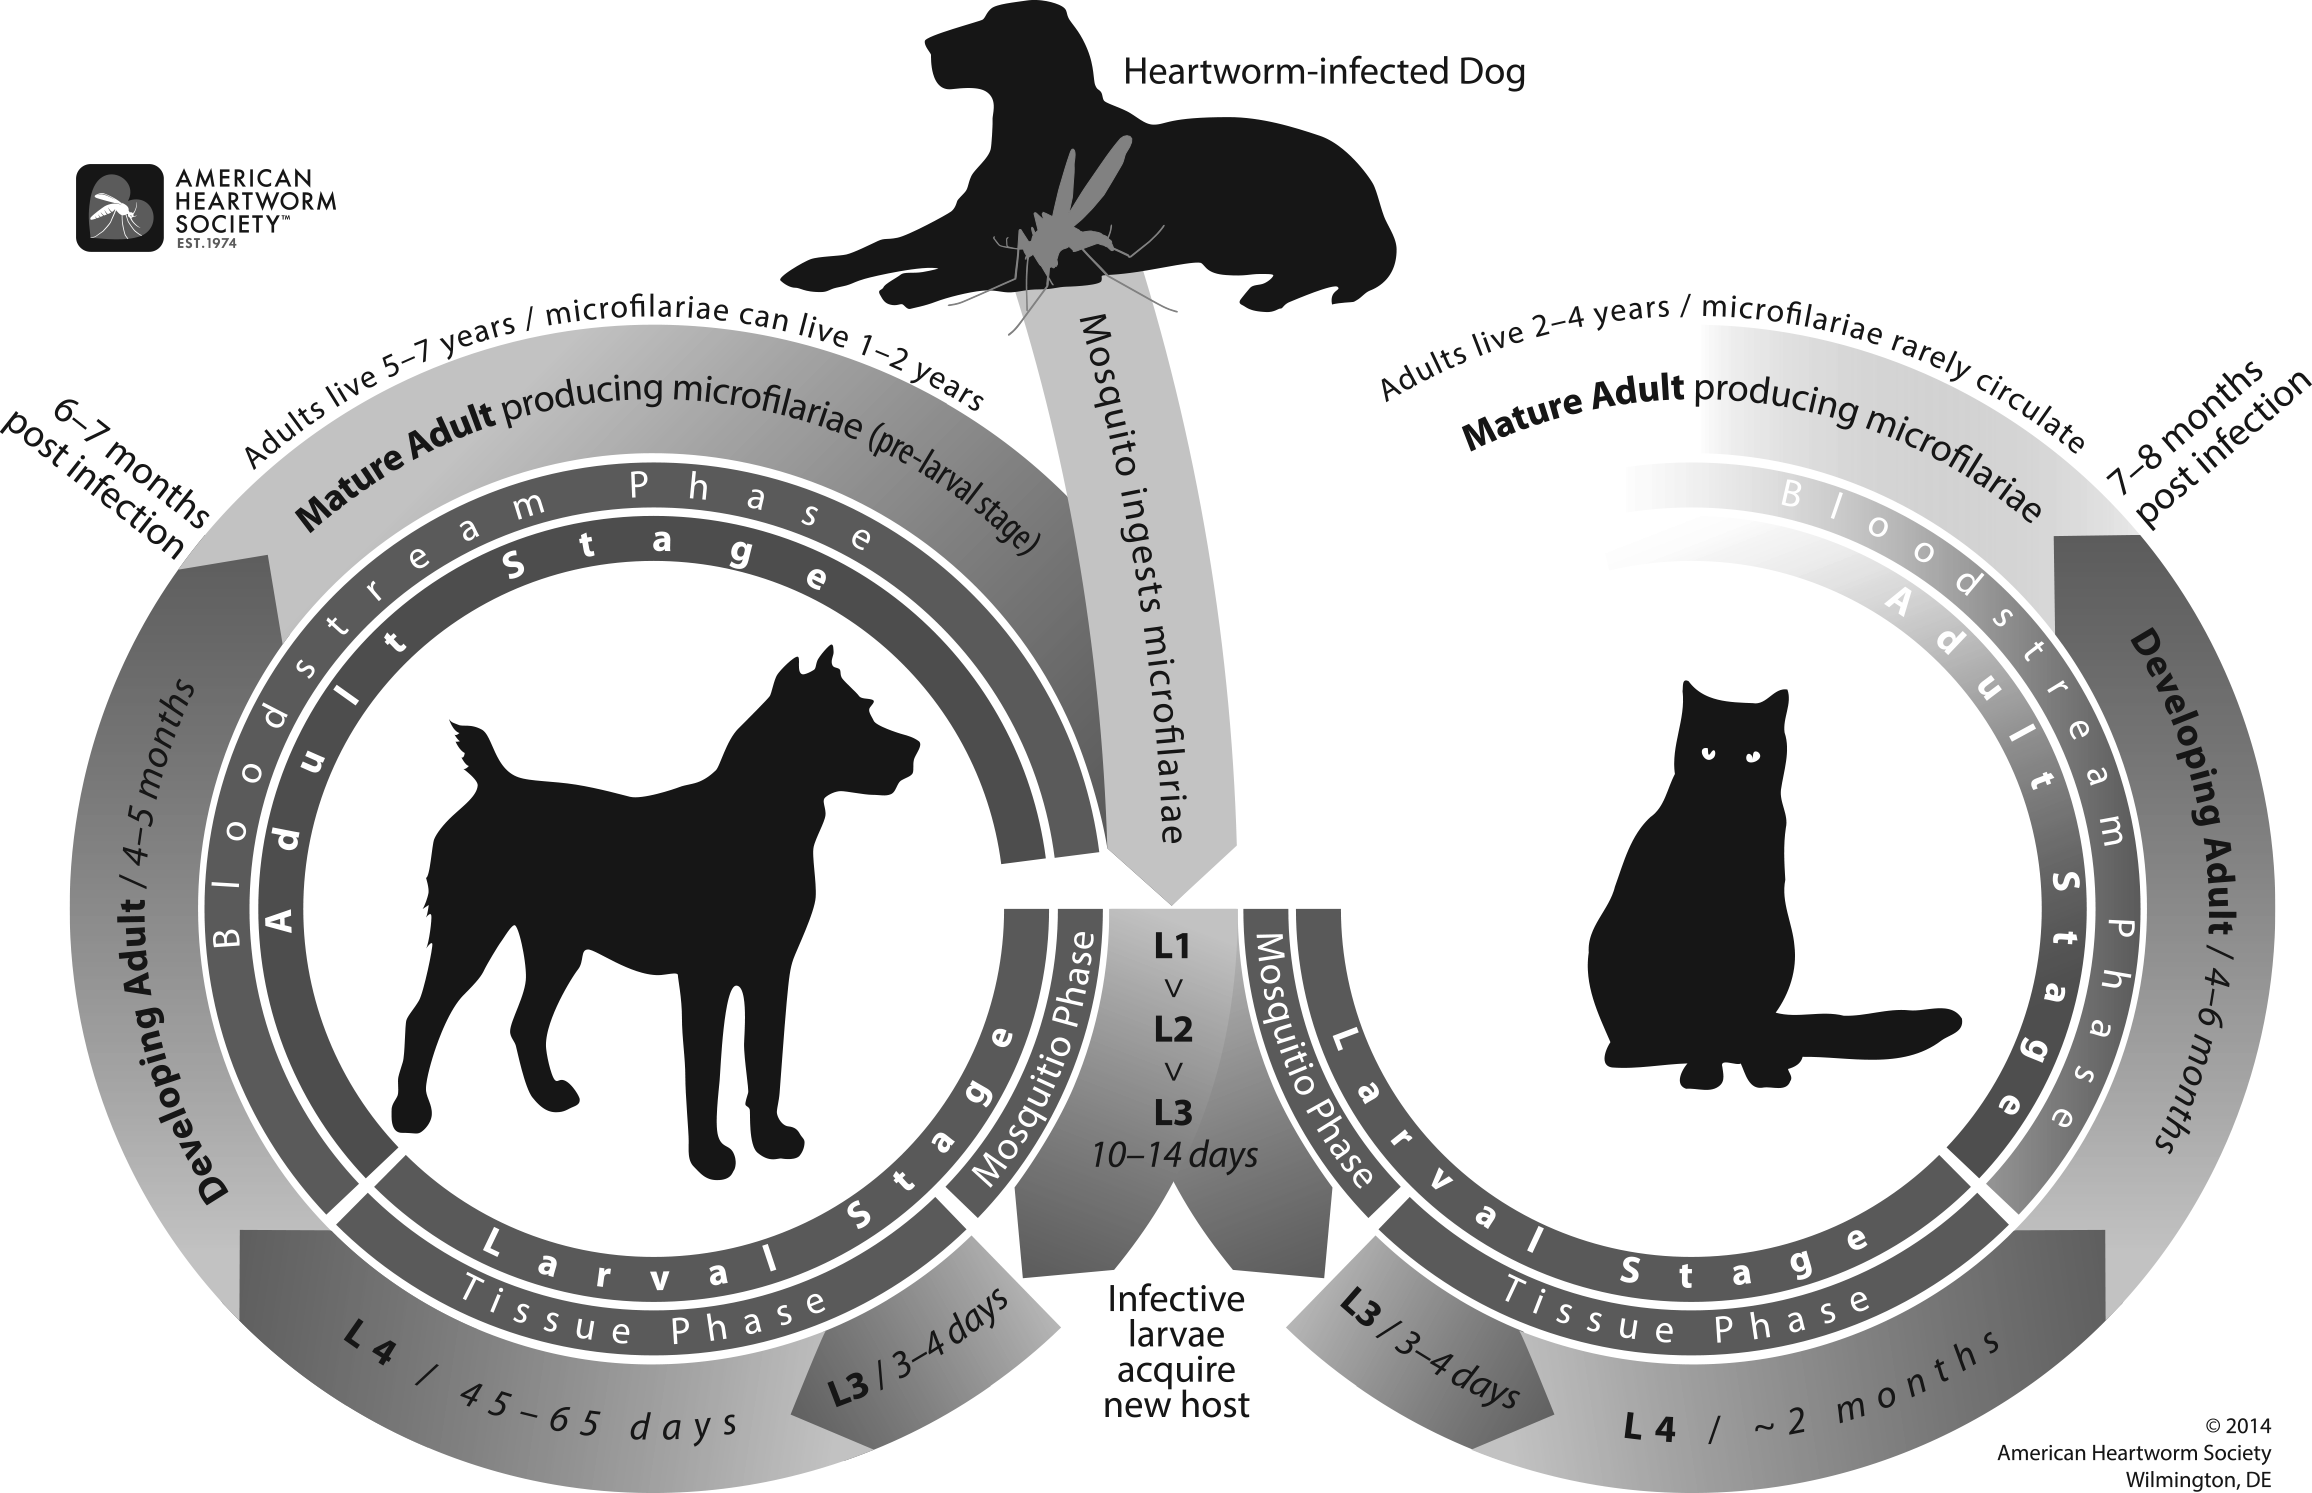 The heartworm life cycle. Printed with permission of the American Heartworm Society (heartwormsociety.org)